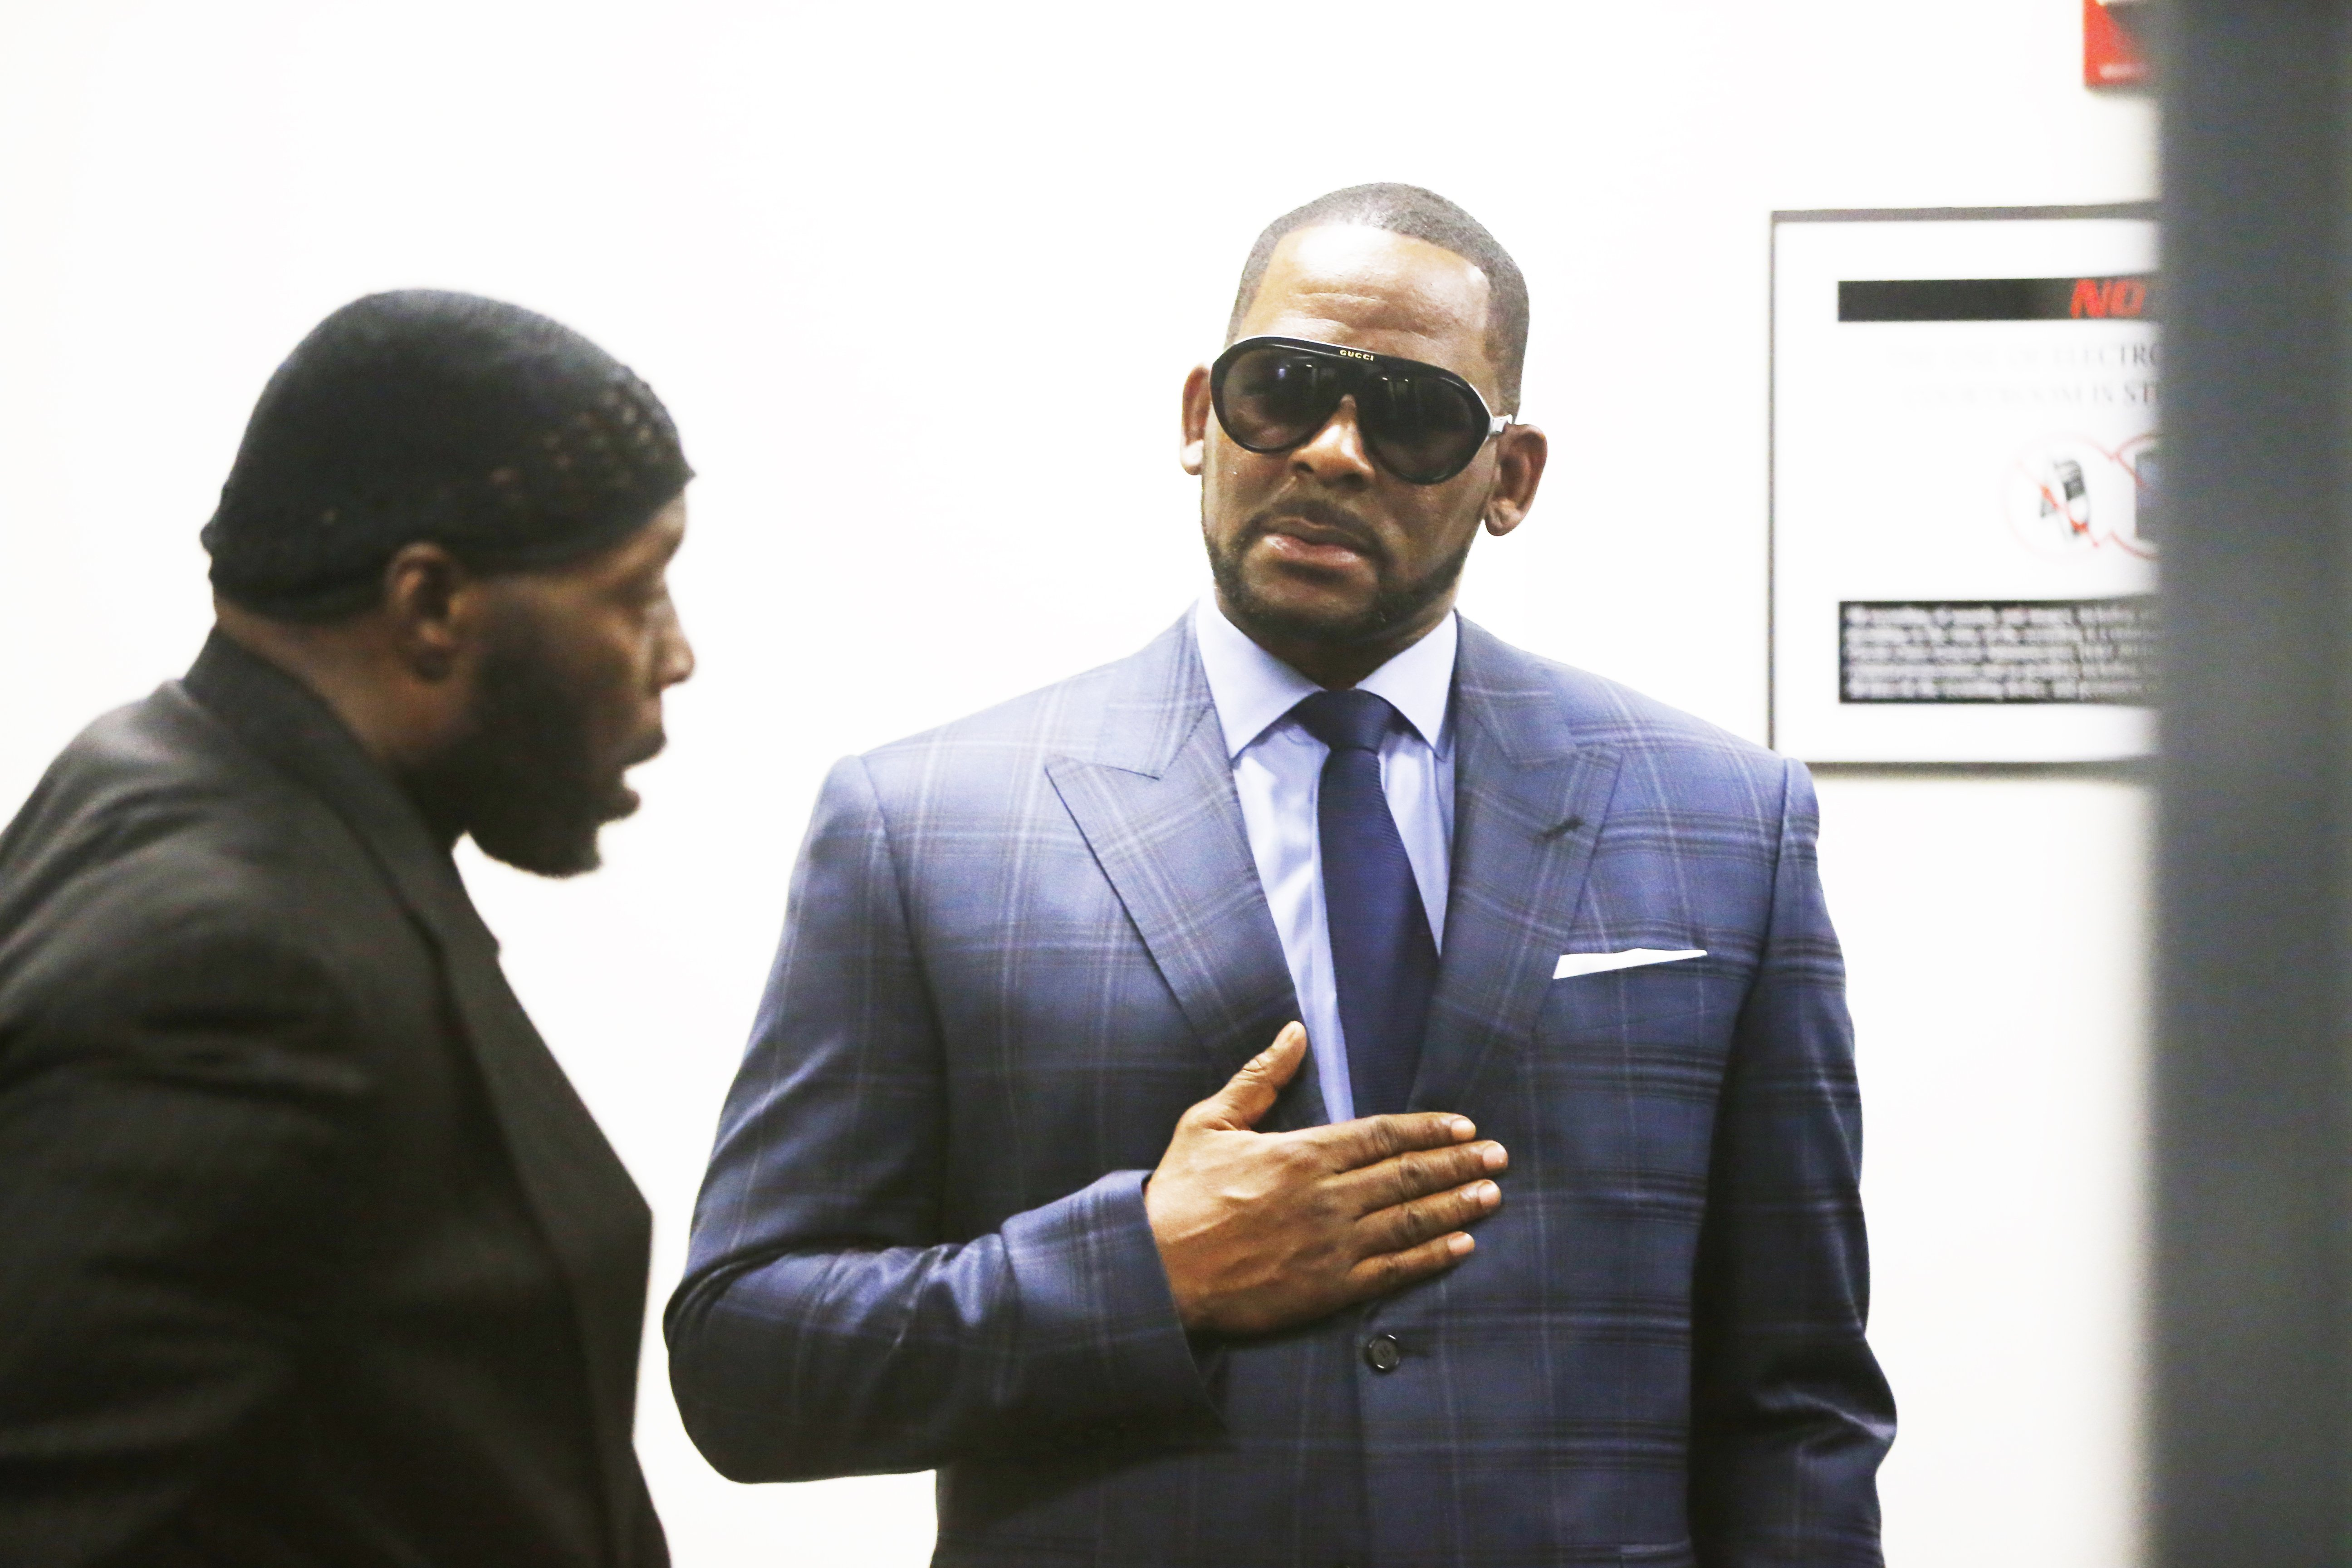 R. Kelly arrives at the Daley Center for his hearing on March 6, 2019 in Chicago, Illinois.   Photo: GettyImages